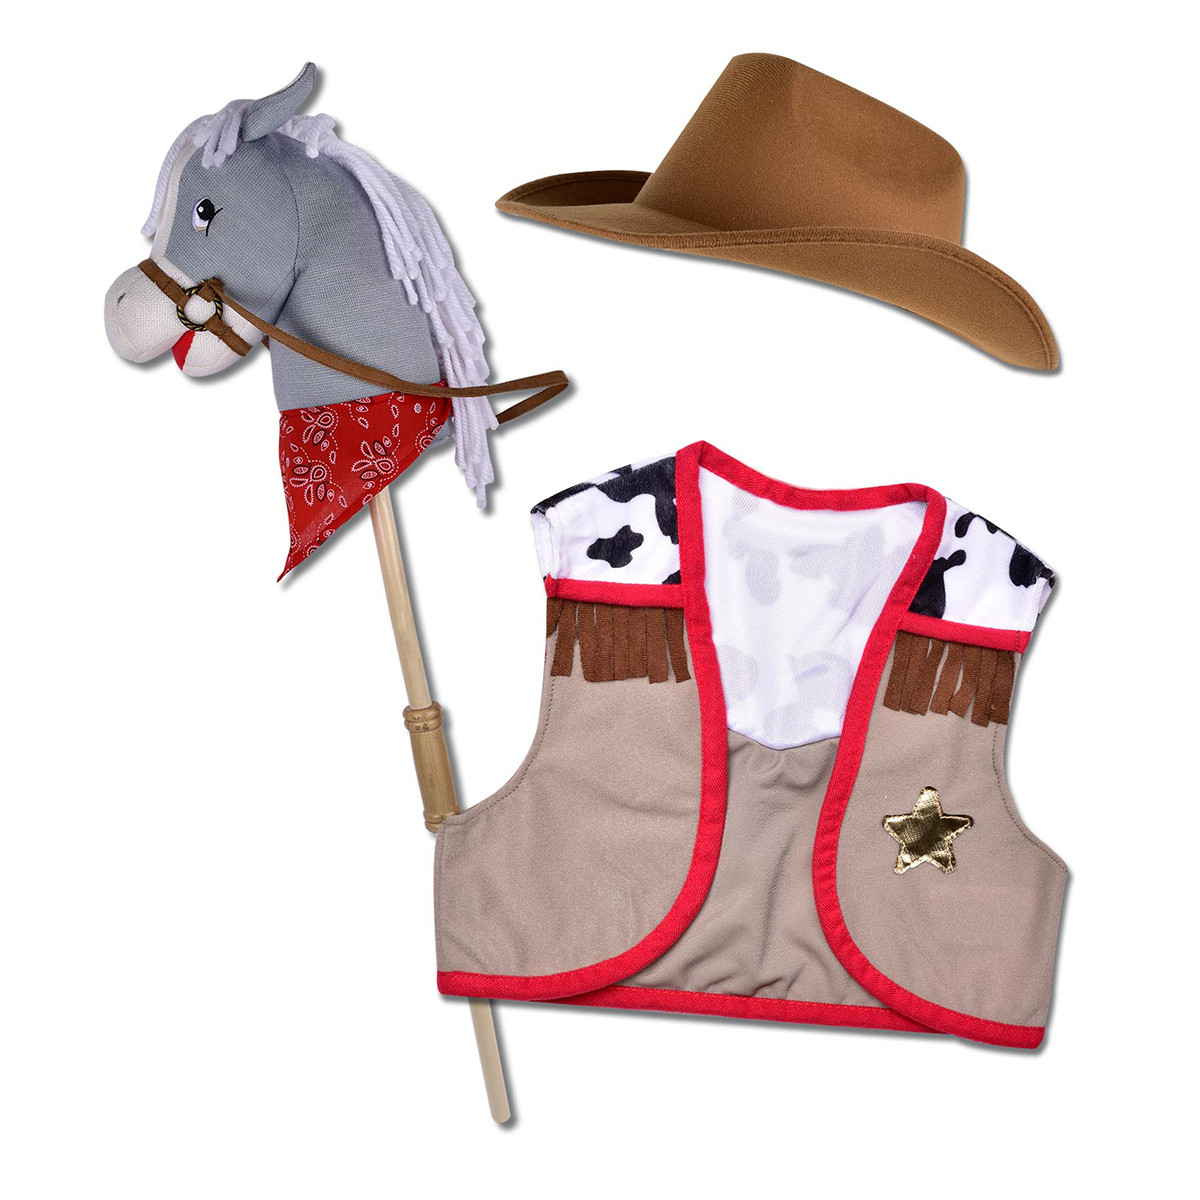 Playset - Hobby Horse with Accessories